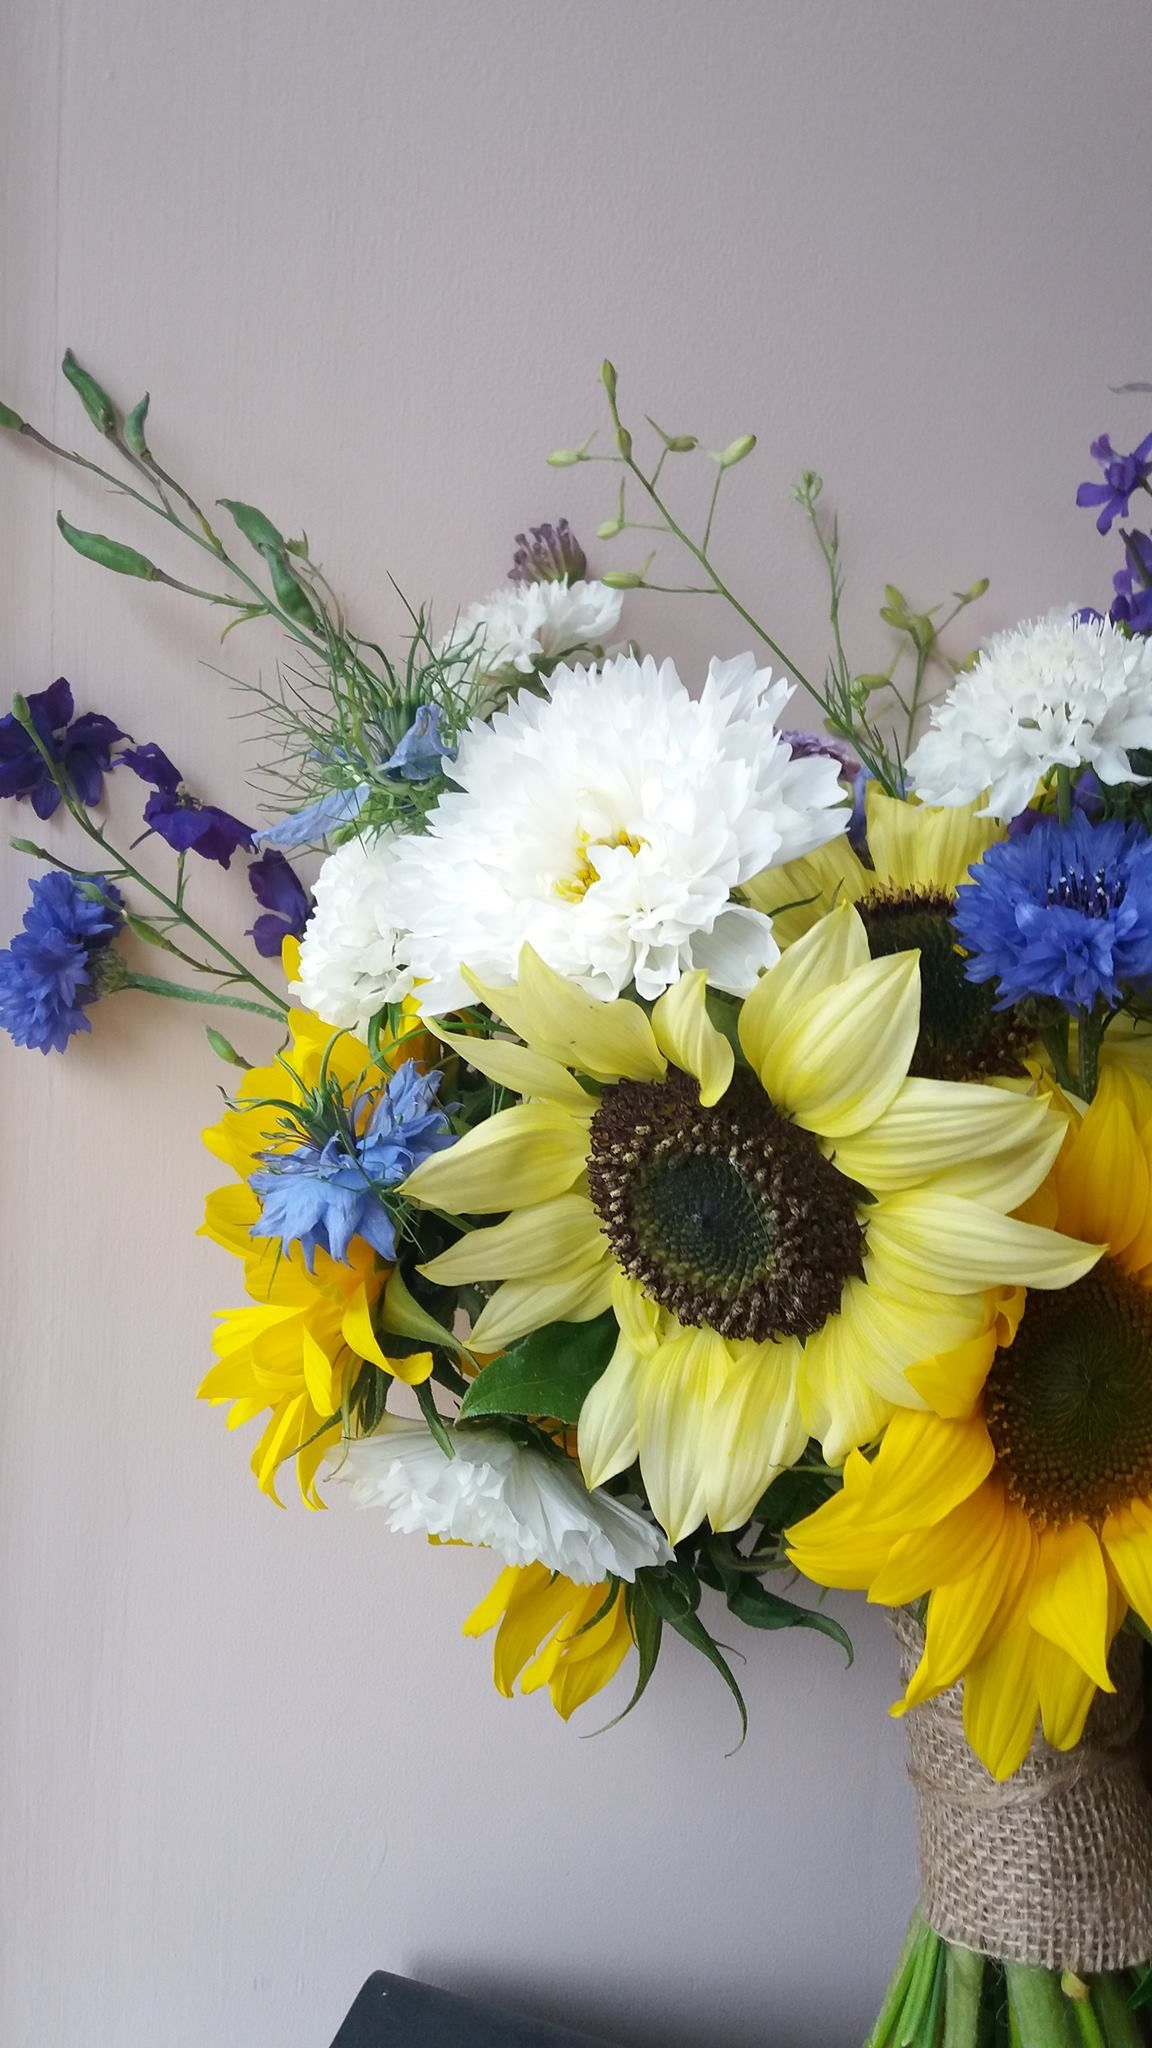 August sunflower and blue british flower bouquet yorkshire grown august sunflower and blue british flower bouquet yorkshire grown flowers for sarah and jasons wedding izmirmasajfo Image collections